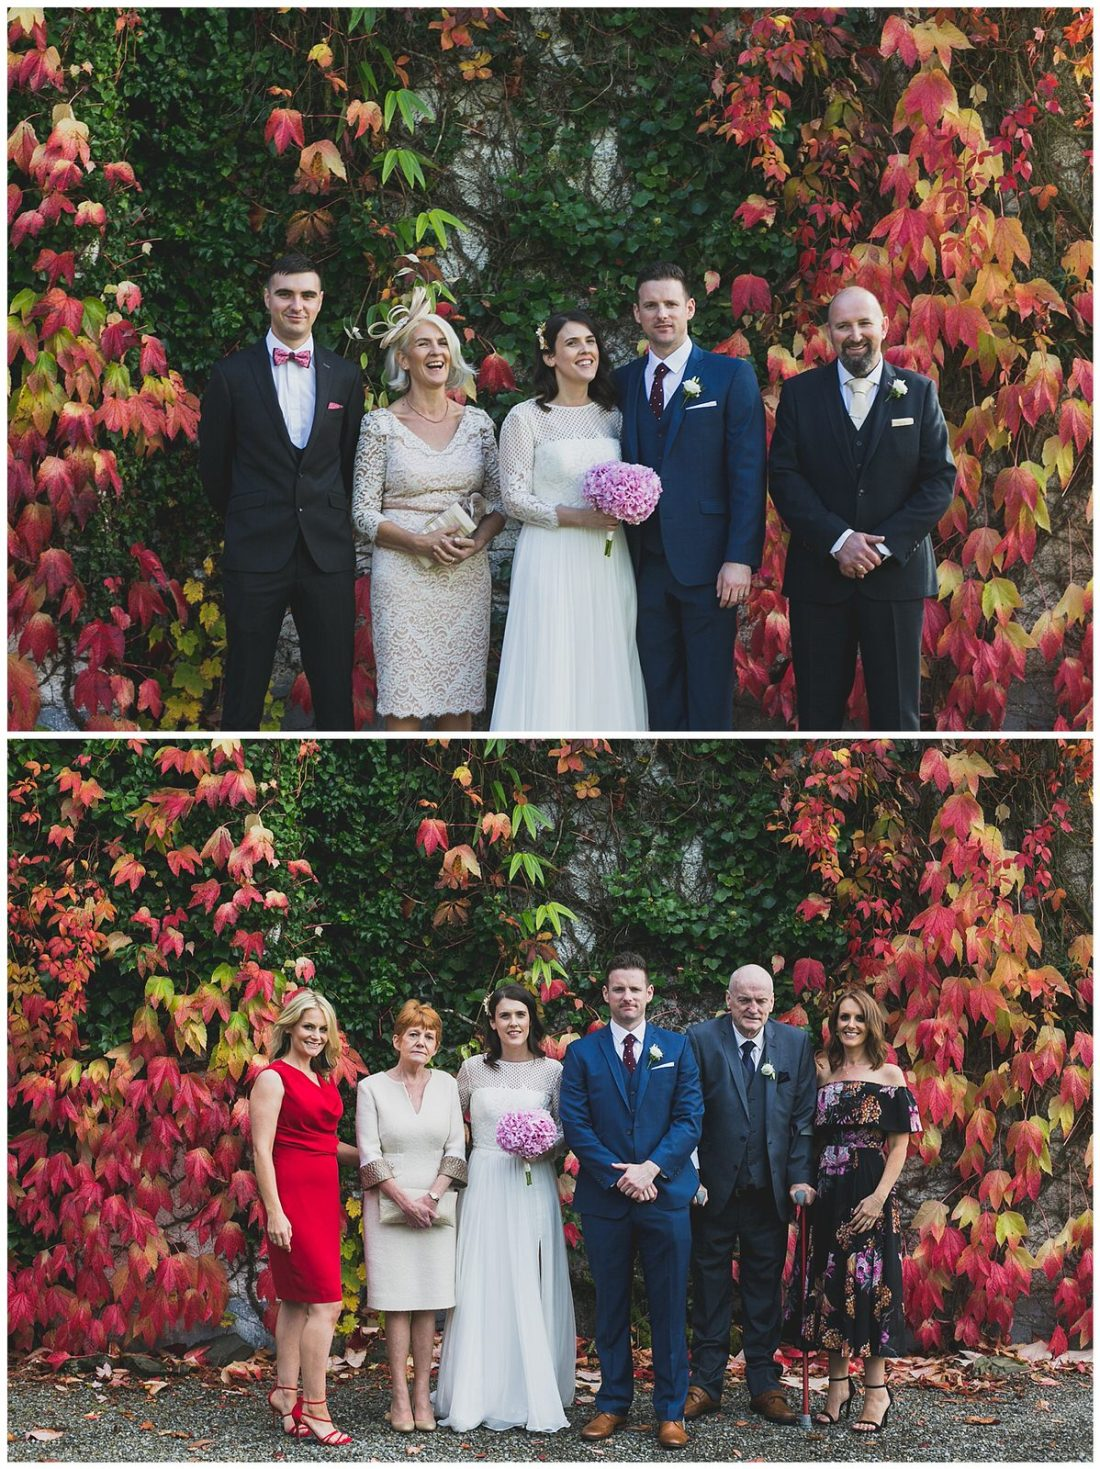 Natural and relaxed family wedding portraits